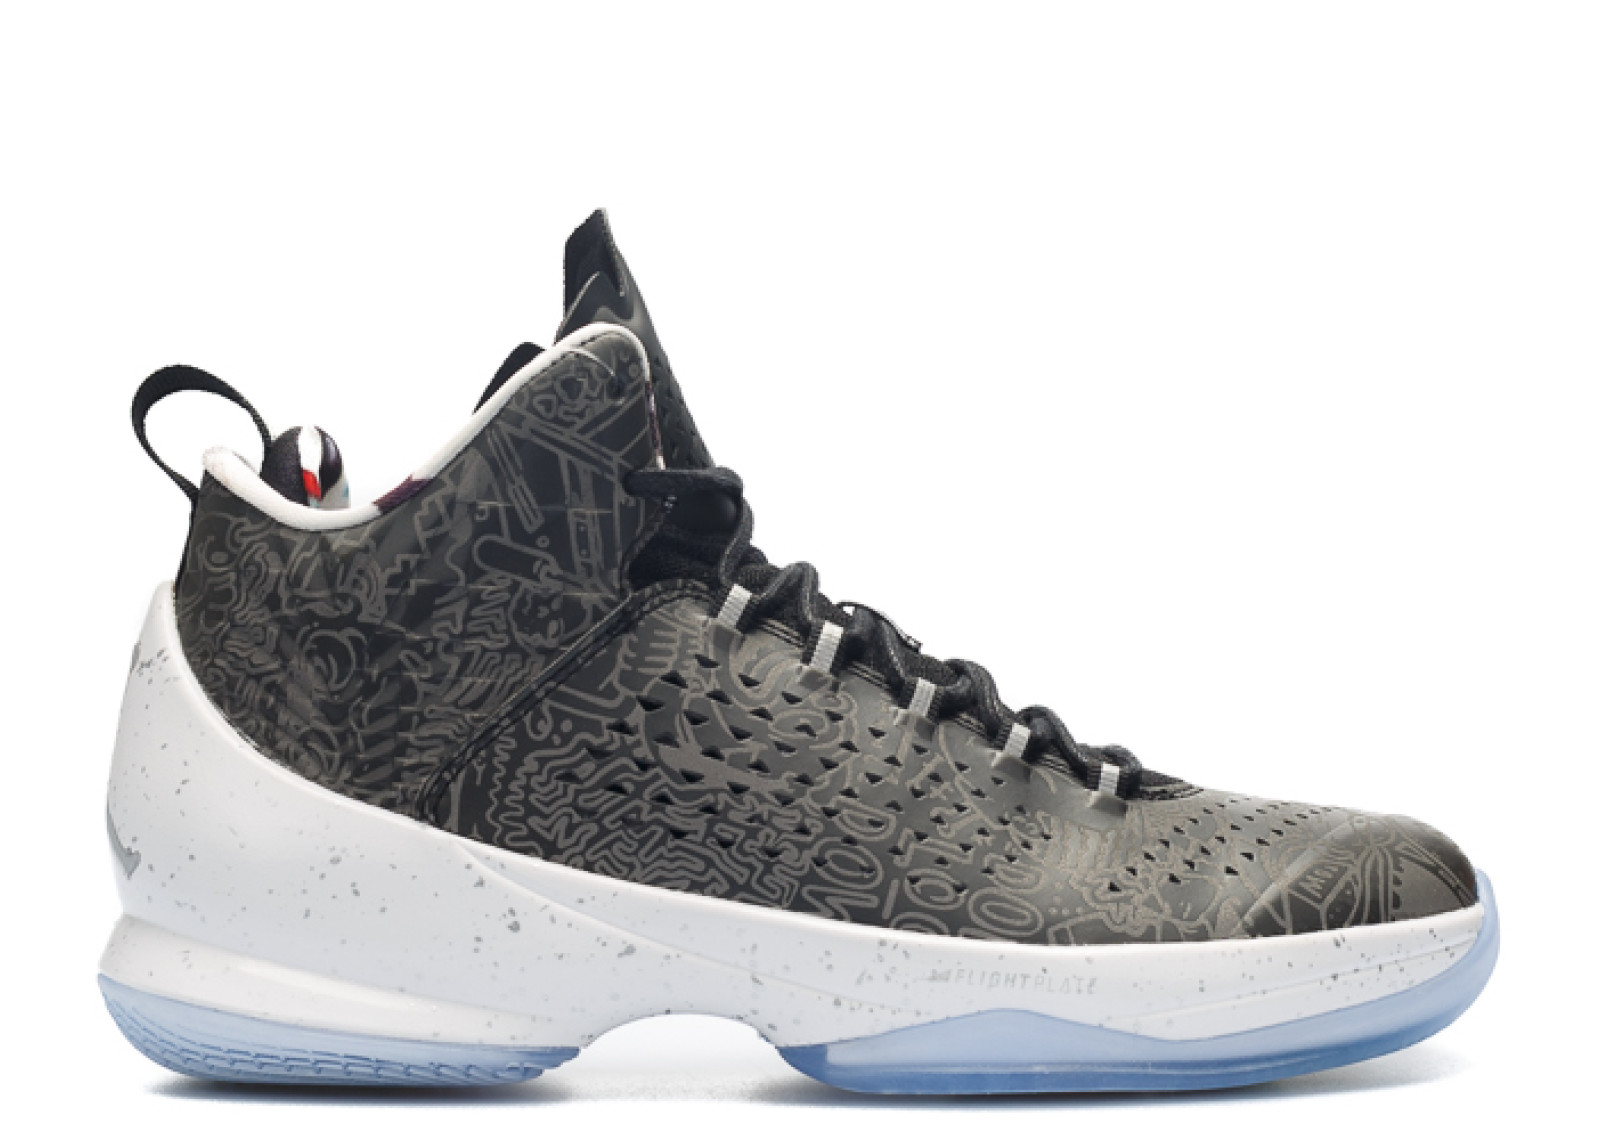 online retailer ff5a9 bc976 Air Jordan - Men - Melo M11 Hebru 'Hebru Brantley' - 814286-050 - Size 9